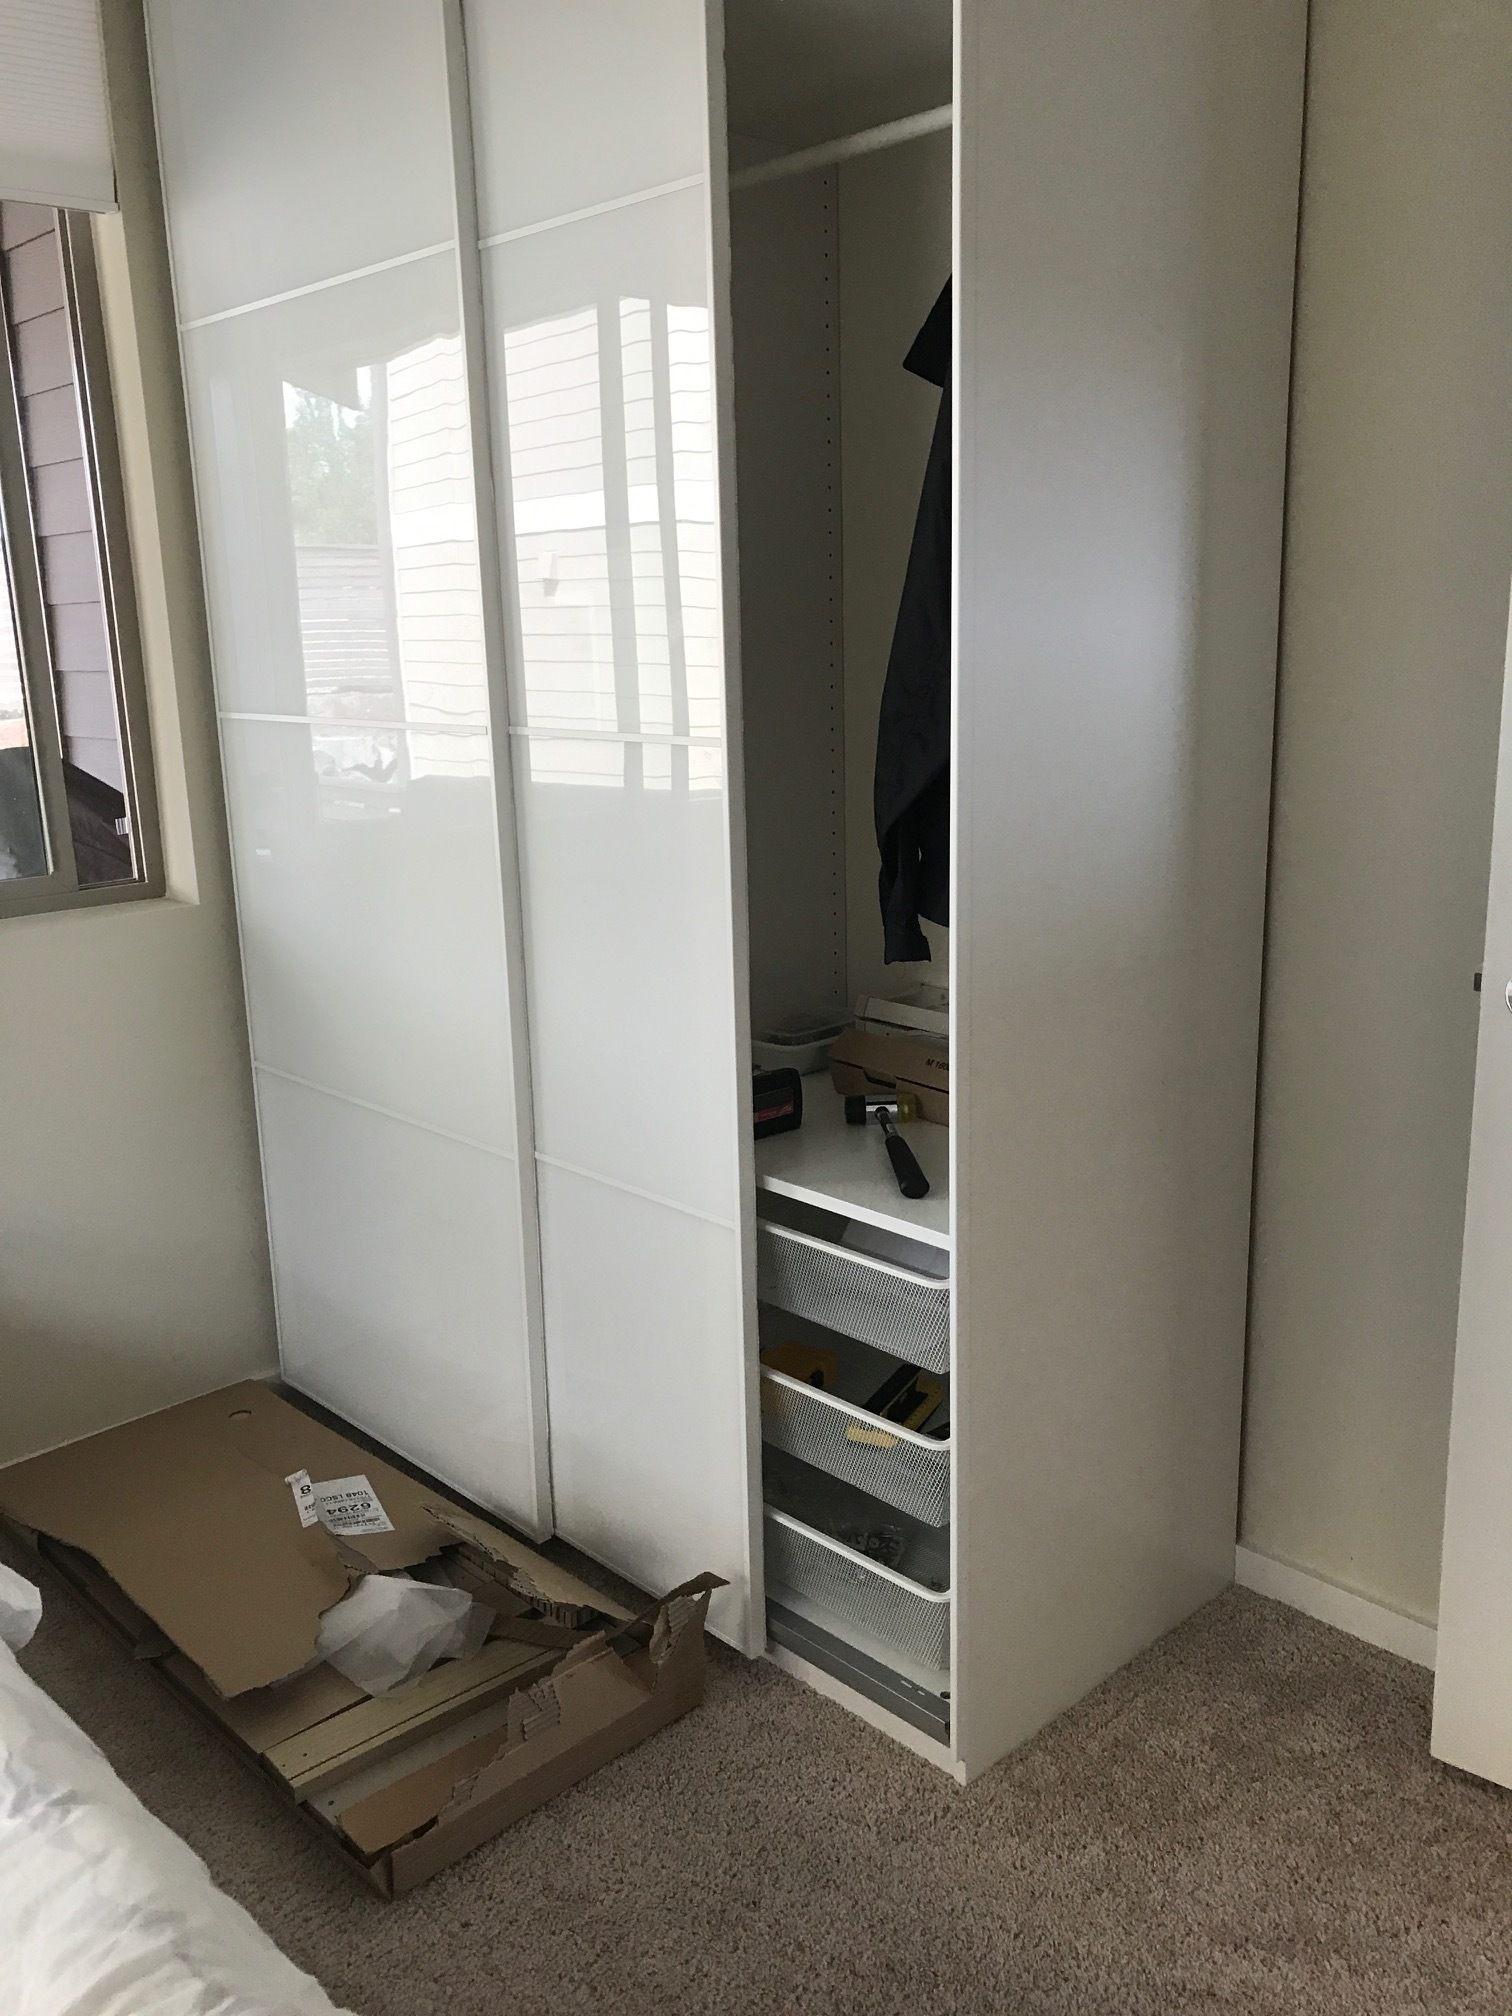 PAX pair of sliding doors $379, PAX wardrobe- $390